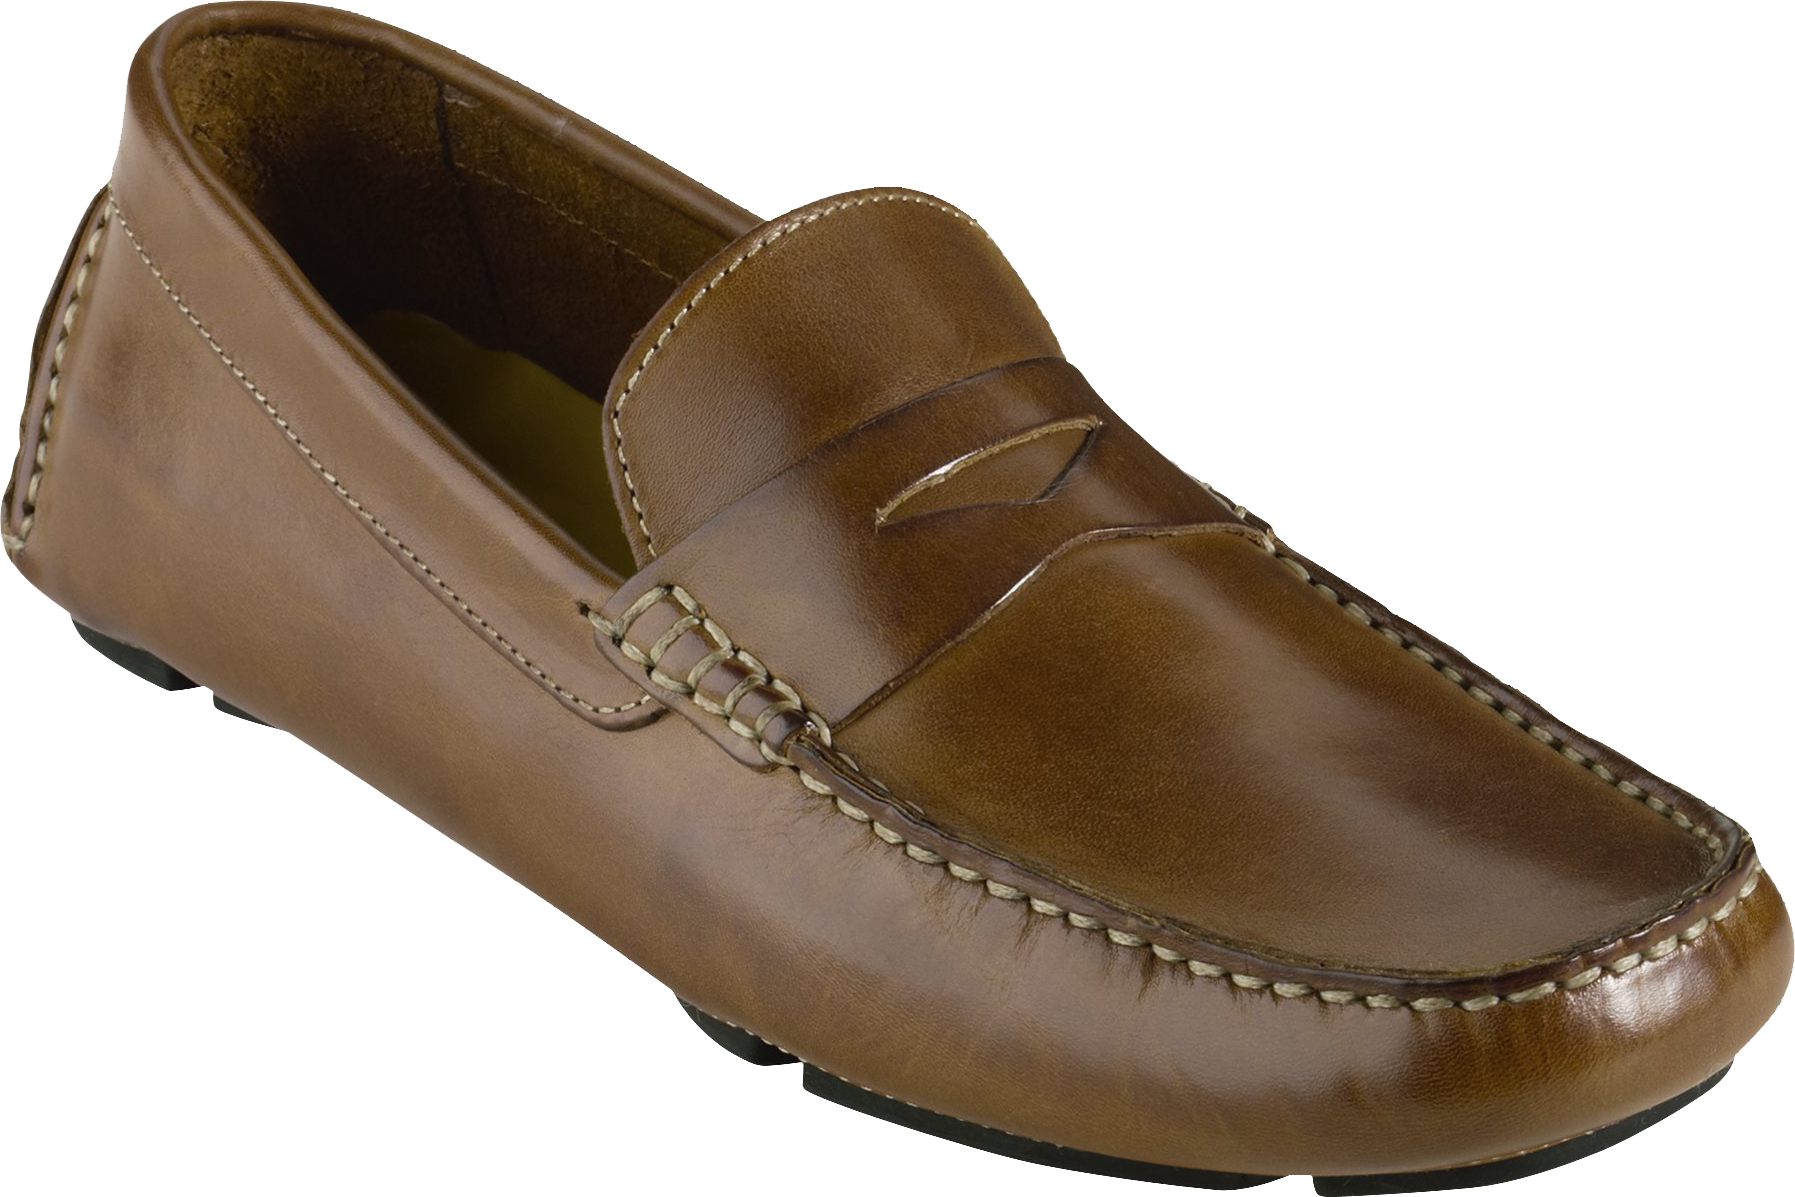 1c52d00a497 Howland Penny Shoe by Cole Haan CLEARANCE - All Clearance ...